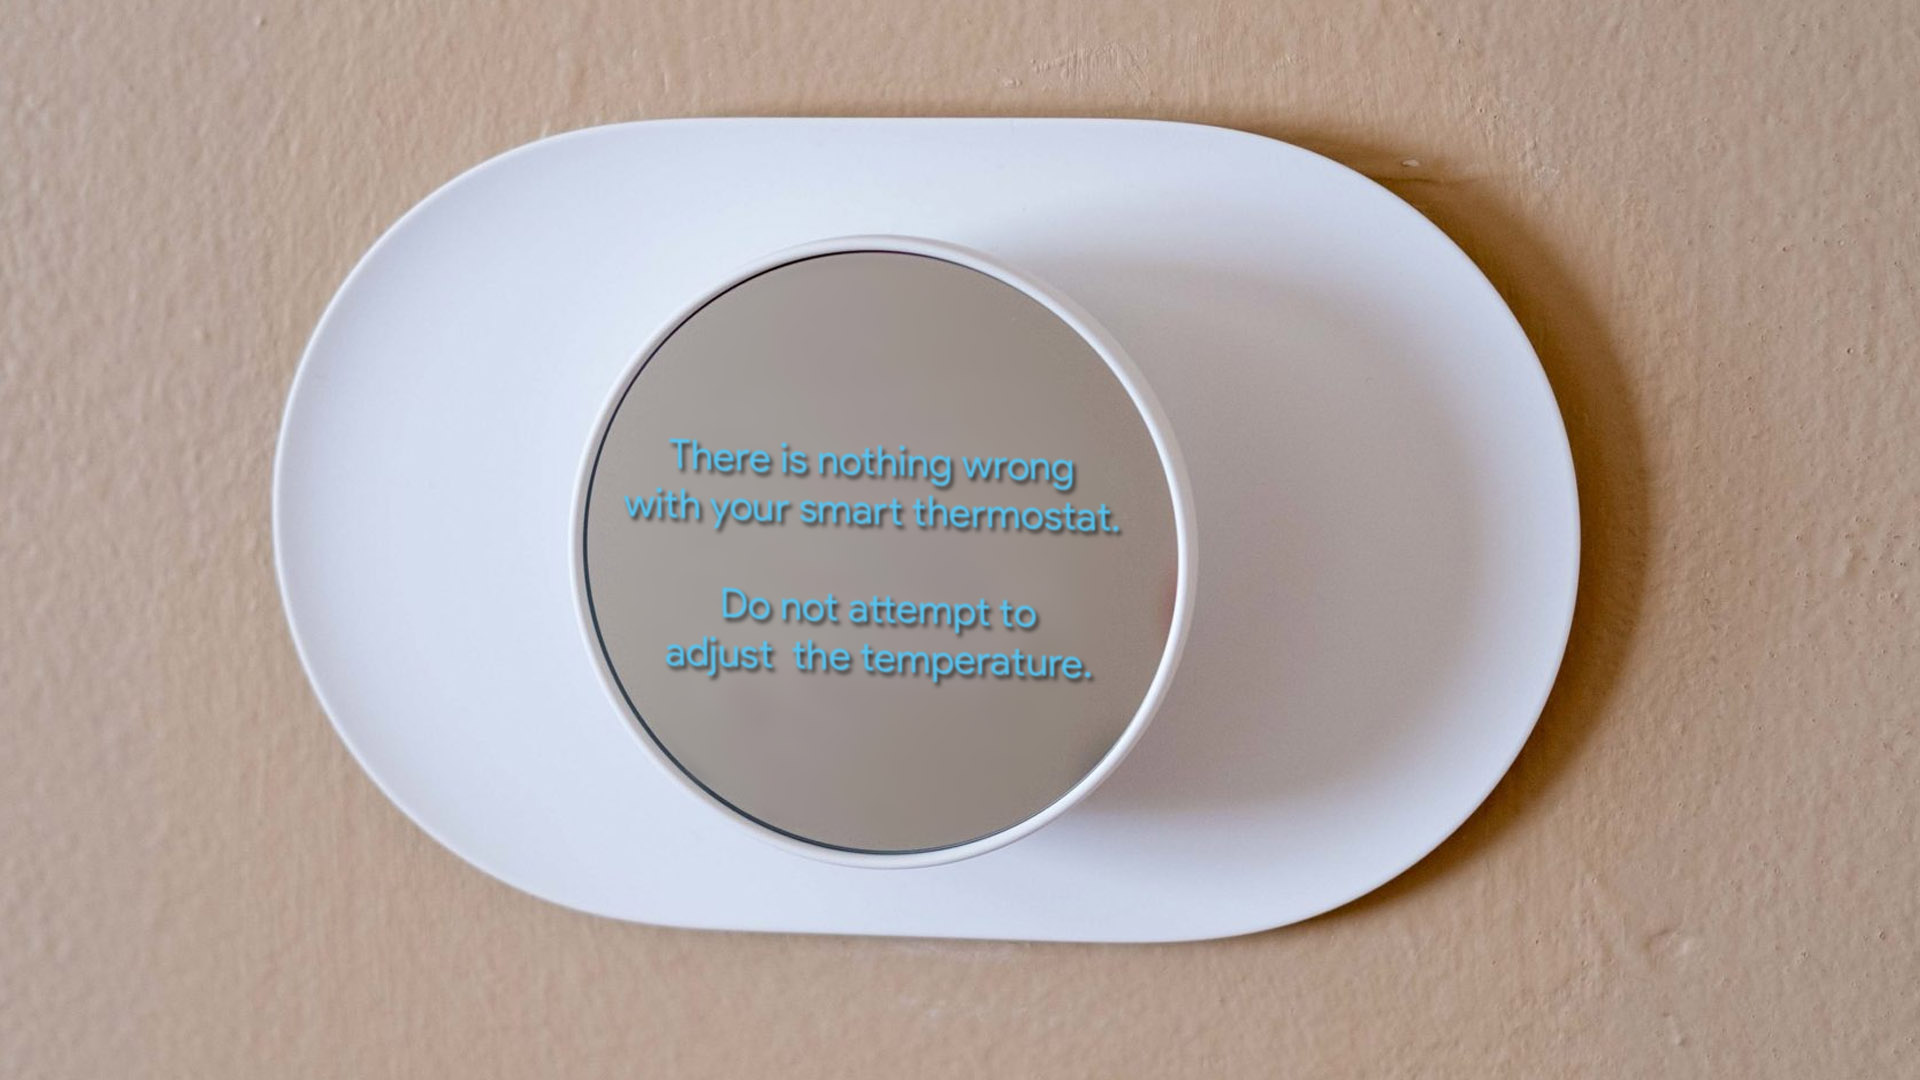 Texas residents enraged as energy companies remotely raise temperatures on smart thermostats